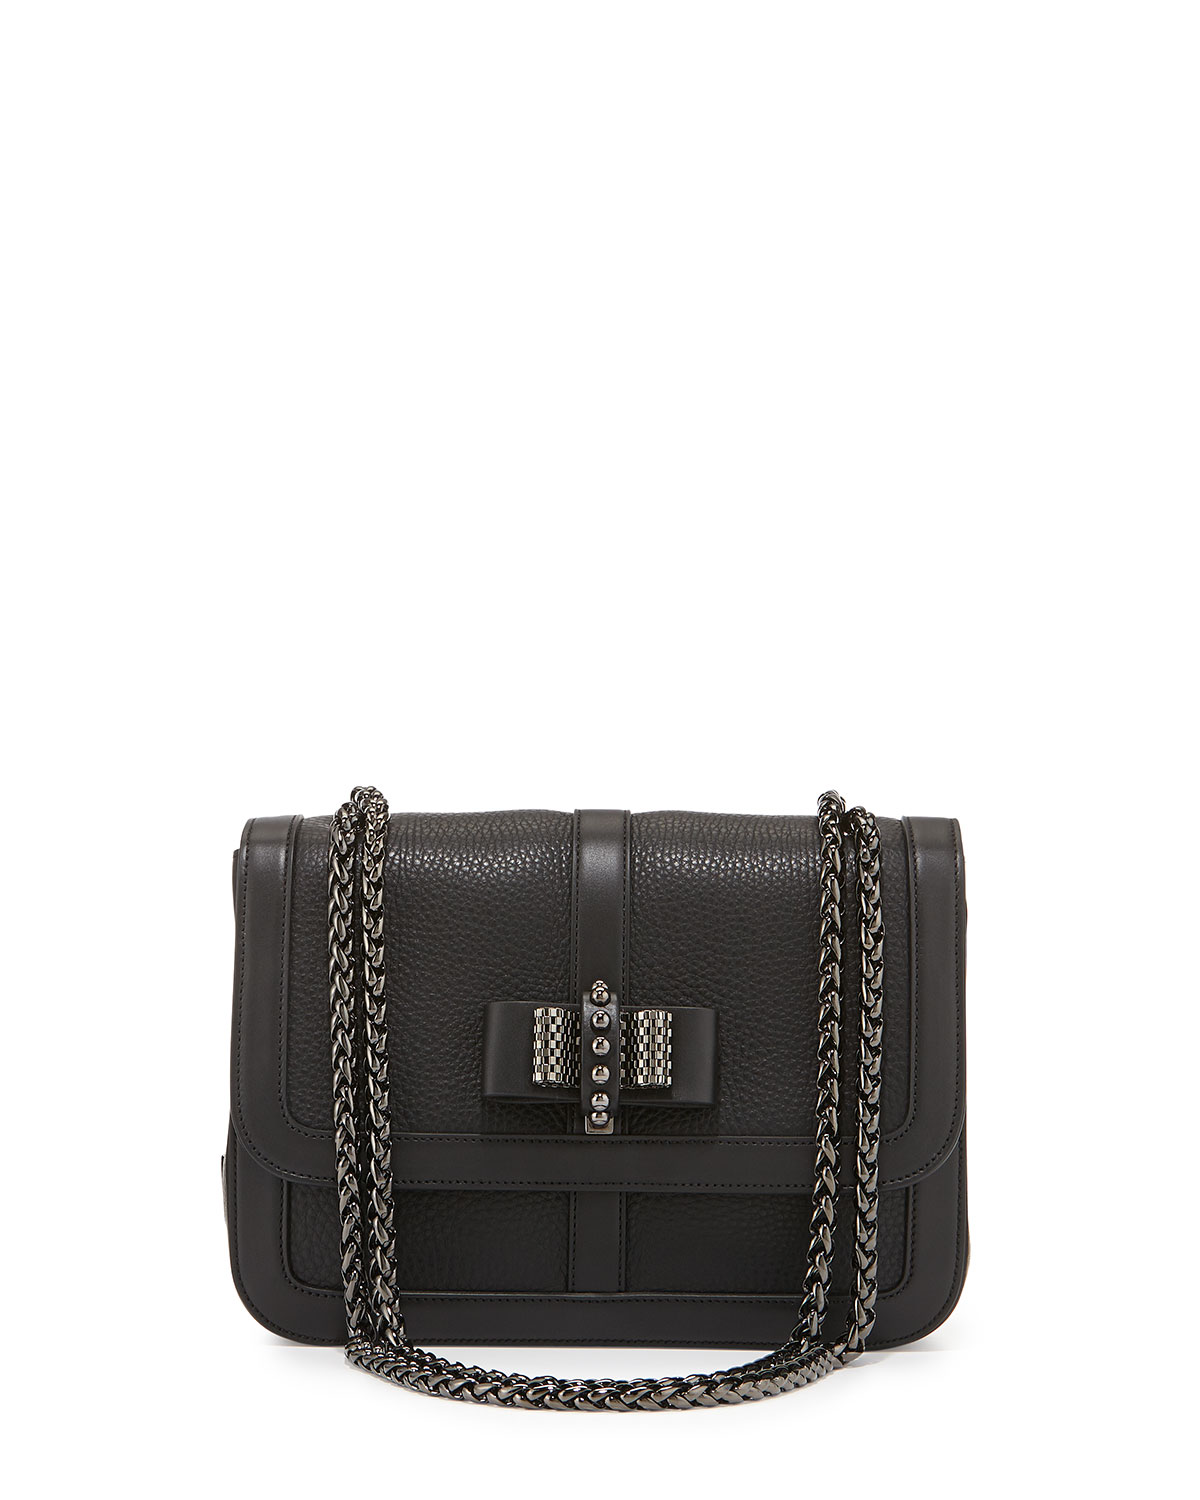 Sweet Charity Small Shoulder Bag, Black - Christian Louboutin